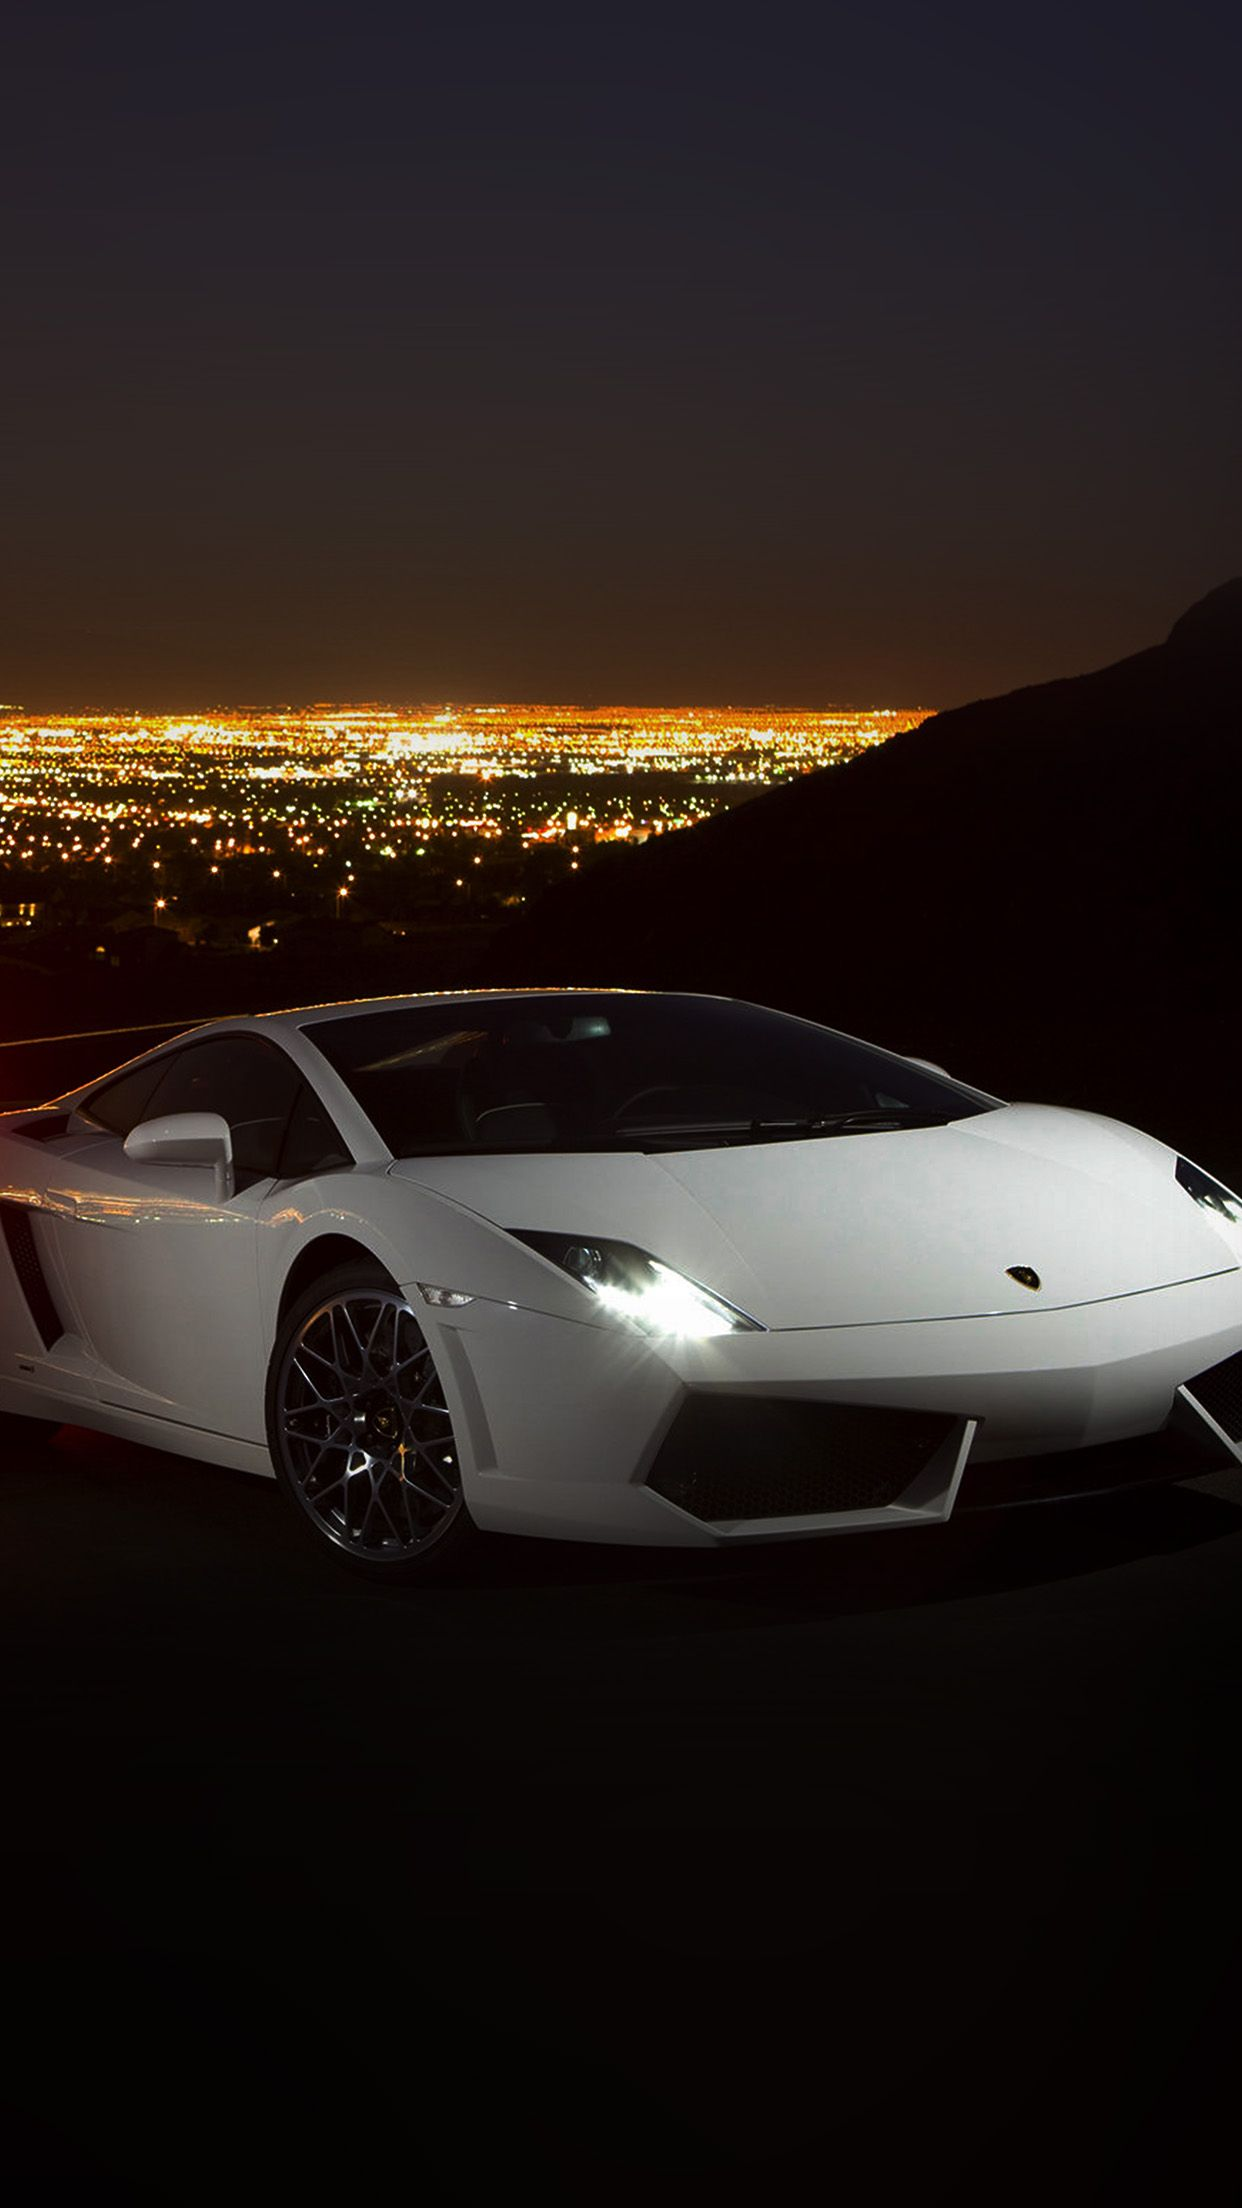 Great Wallpaper Night Lamborghini - 2e6b47367d49f79ebe1f2db2c687ea39  Image-399832.jpg